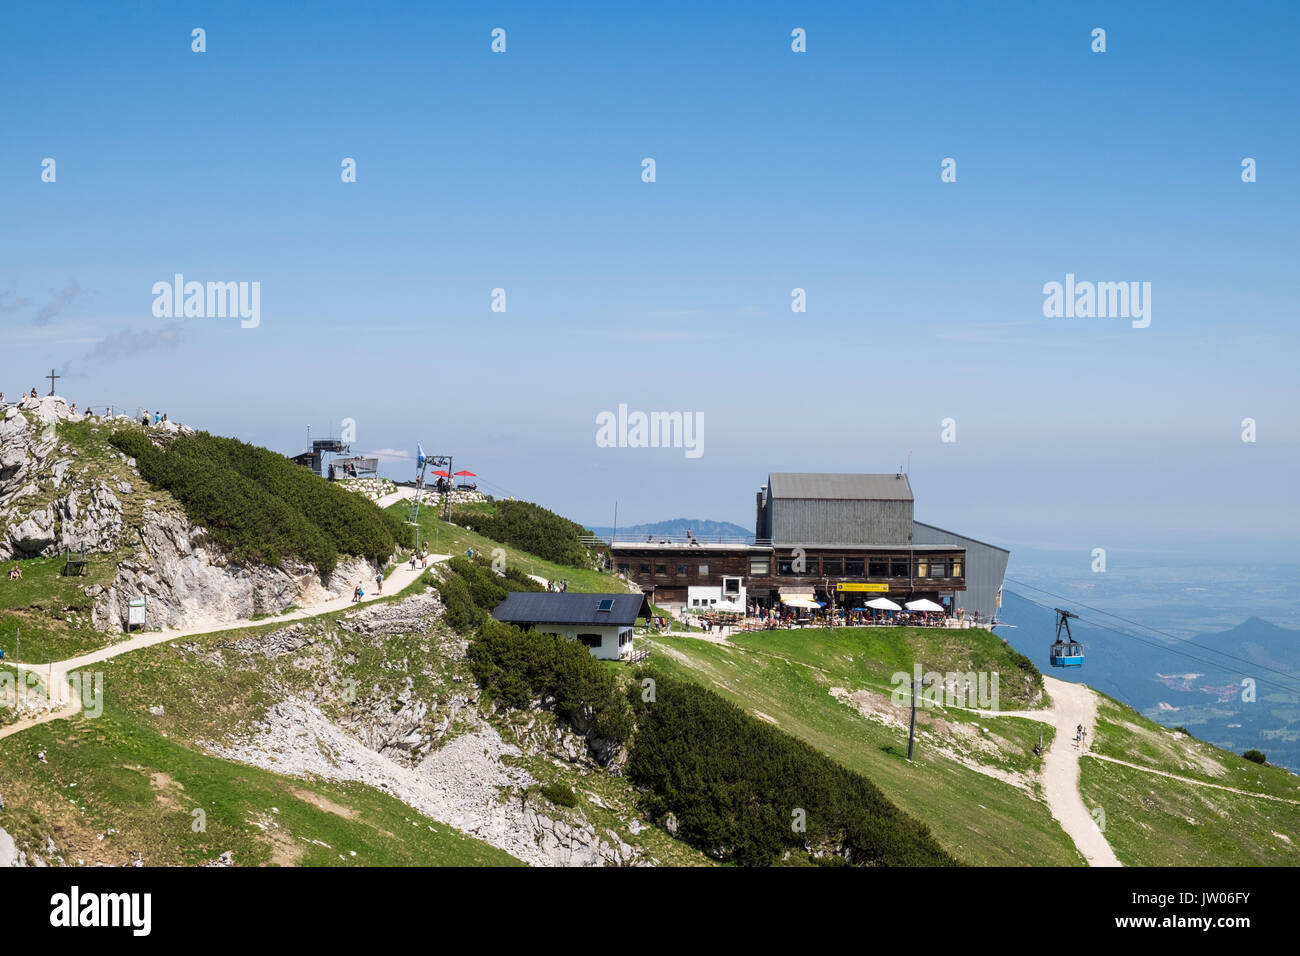 alpspitz-upper-cable-car-station-and-res